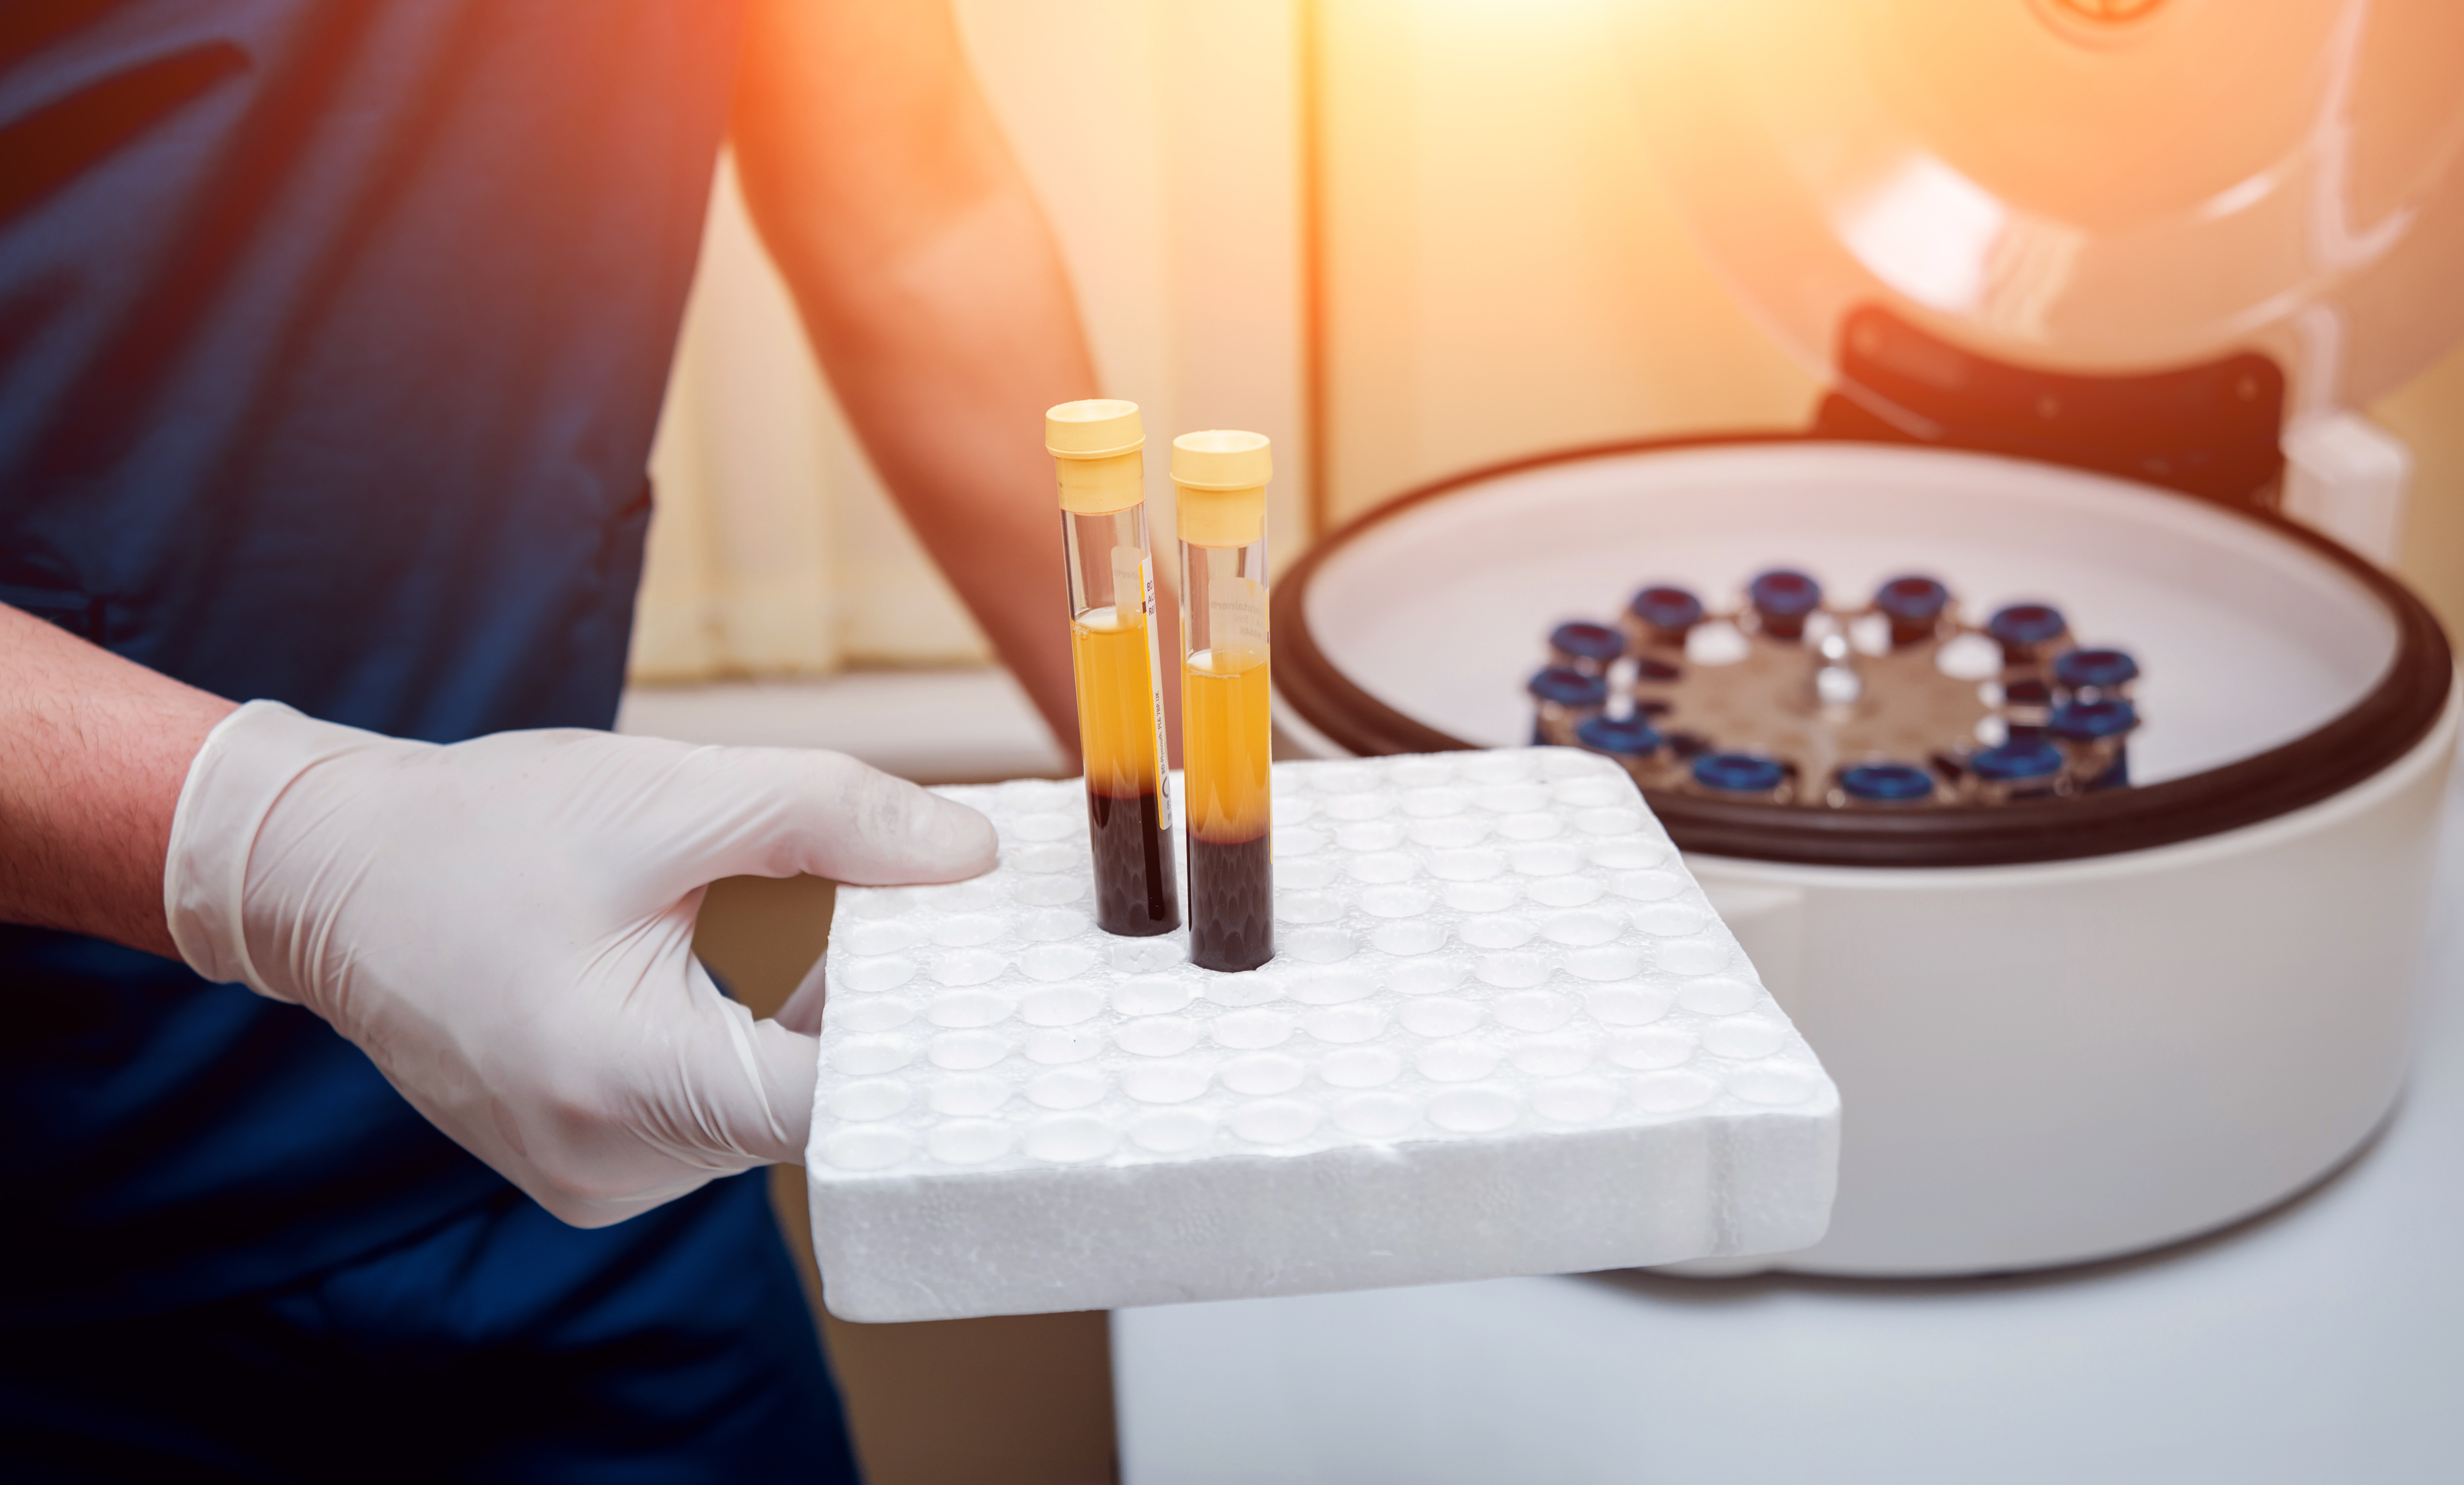 Why Choose Platelet Rich Plasma (PRP)?